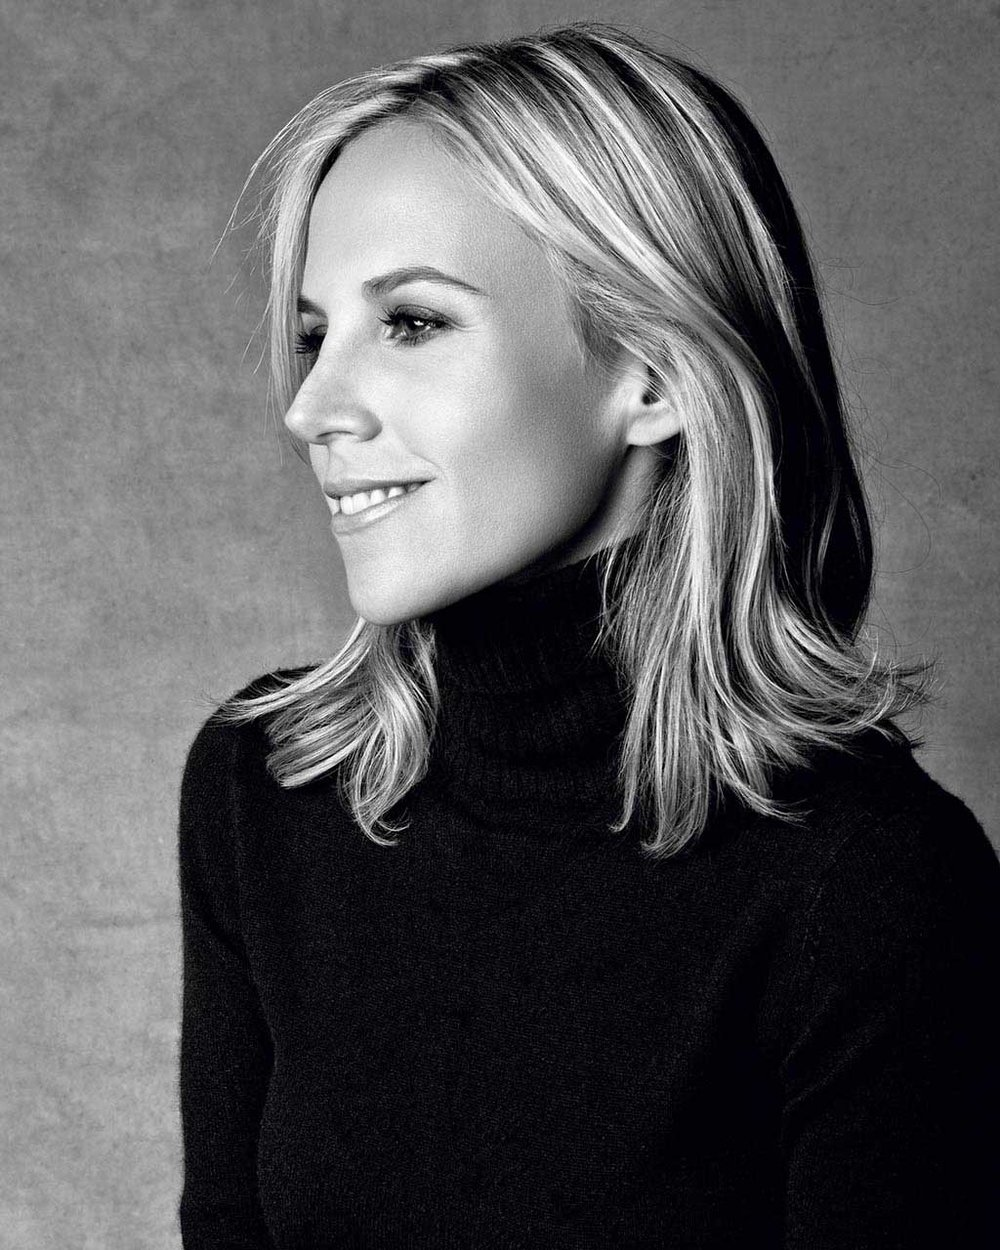 Tory Burch - Chairman, CEO, and Designer of Tory Burch LLC. Estimated net worth of $1 billion.